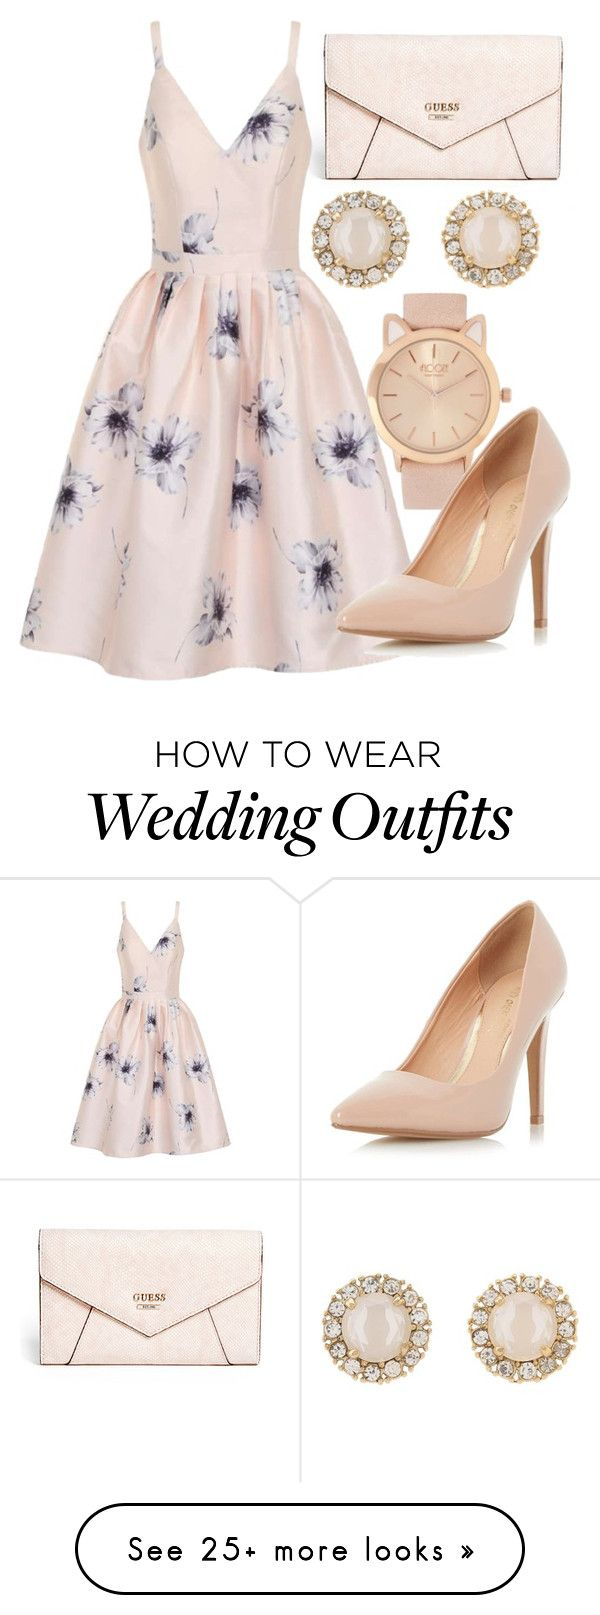 """Wedding guest"" by pixielover-771 on Polyvore featuring GUESS, Kate Spade, Chi Chi and Dorothy Perkins"